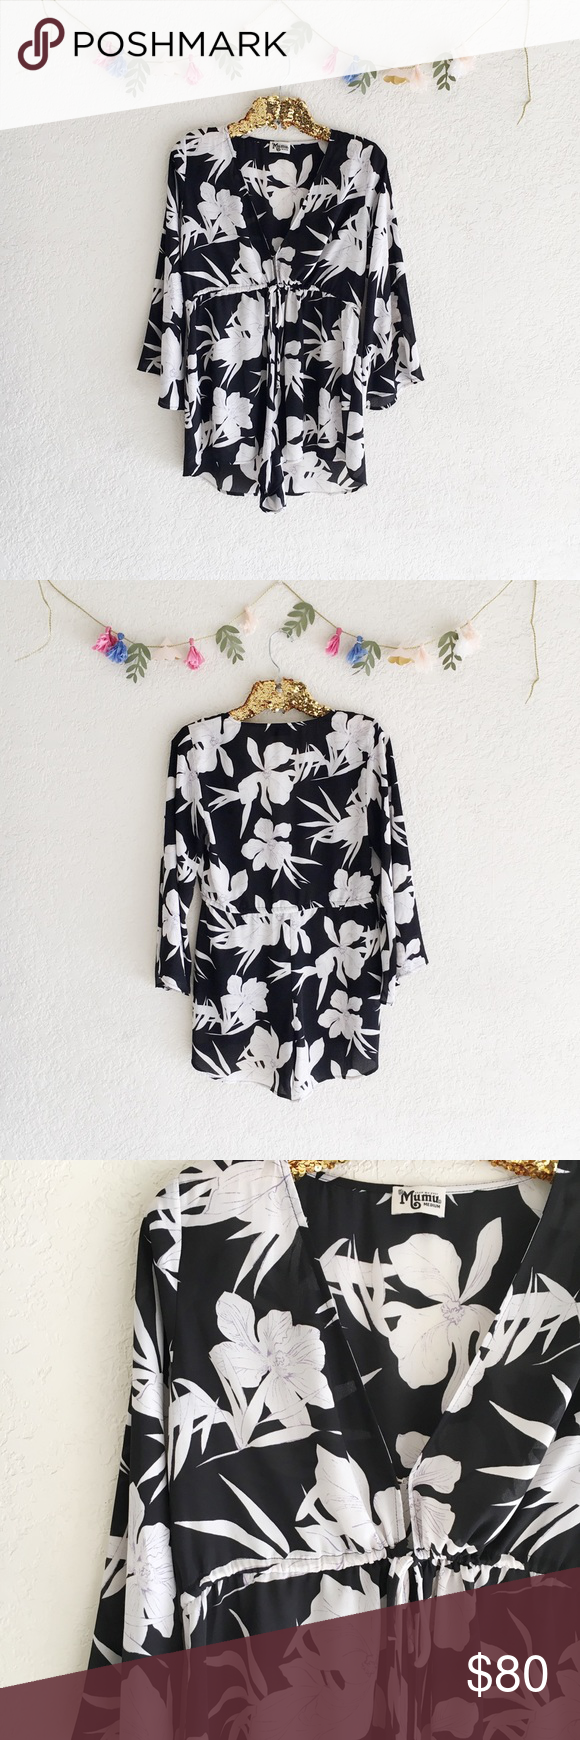 33c7405410b3 Show Me Your Mumu Roxy Romper - Lily Collins This floral Mu has got the  black as ebony and white as snow thing covered for that romantic cool girl  look ...